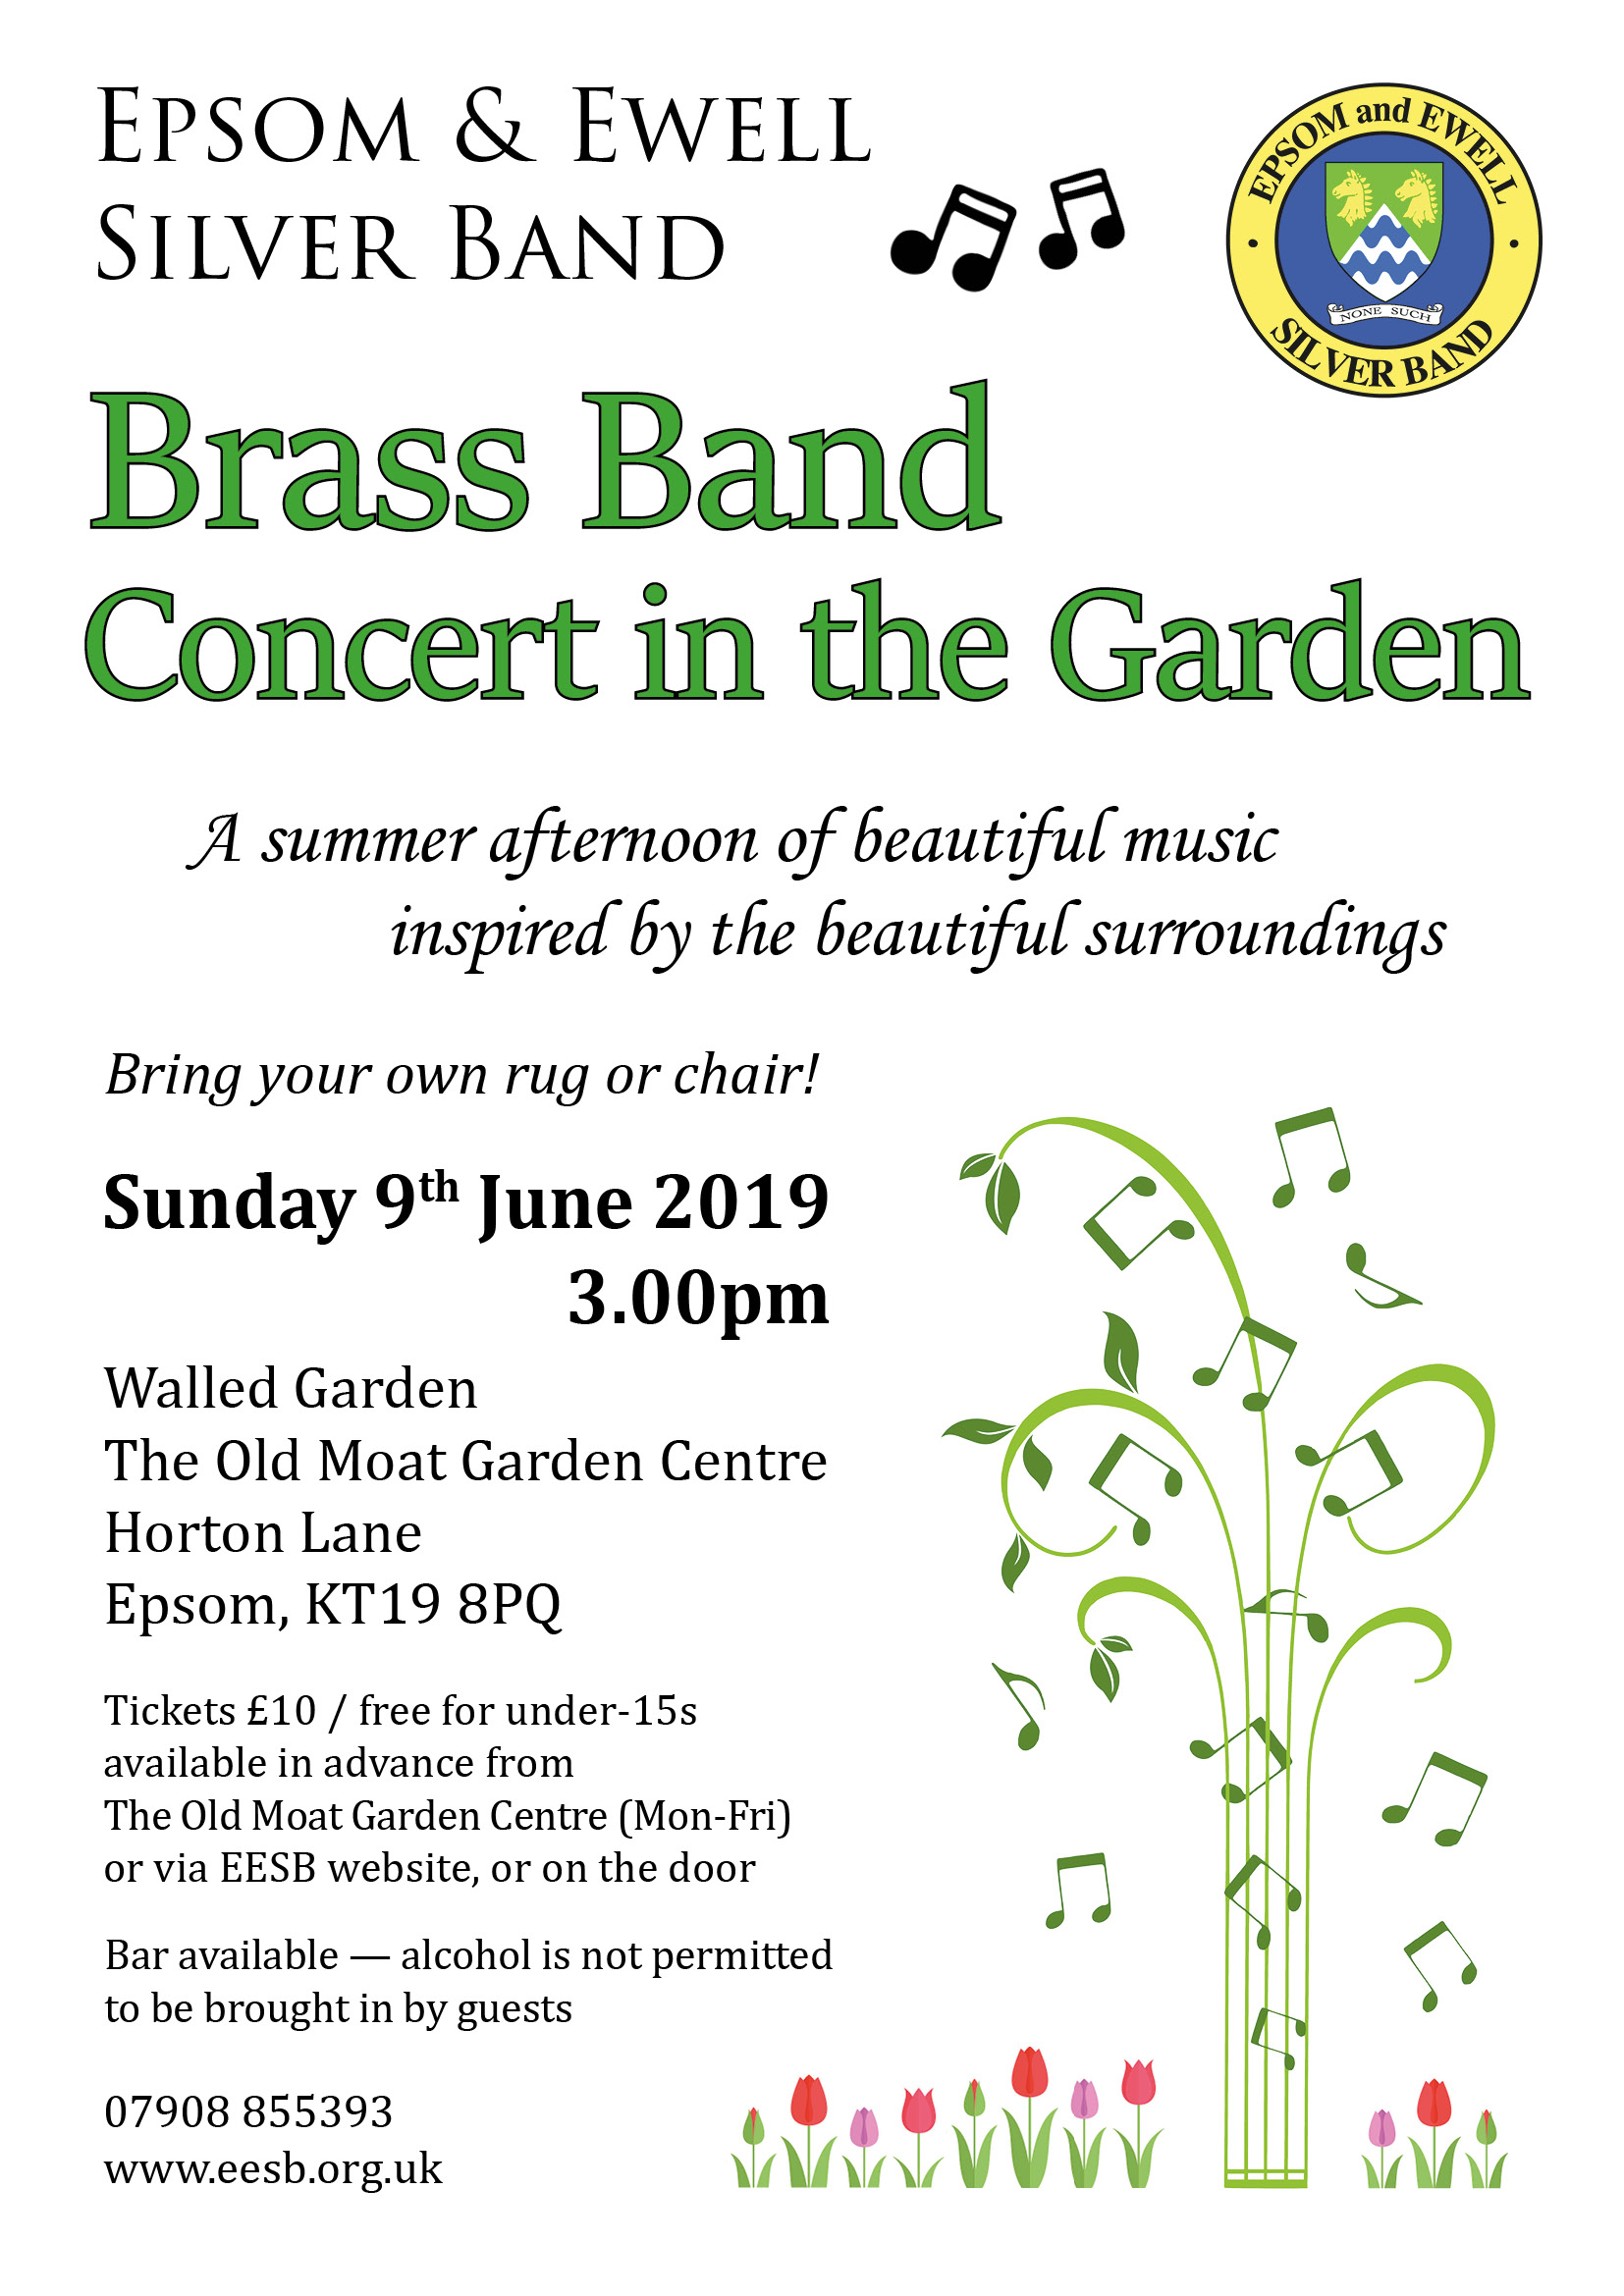 Epsom & Ewell Brass Band Summer Concert